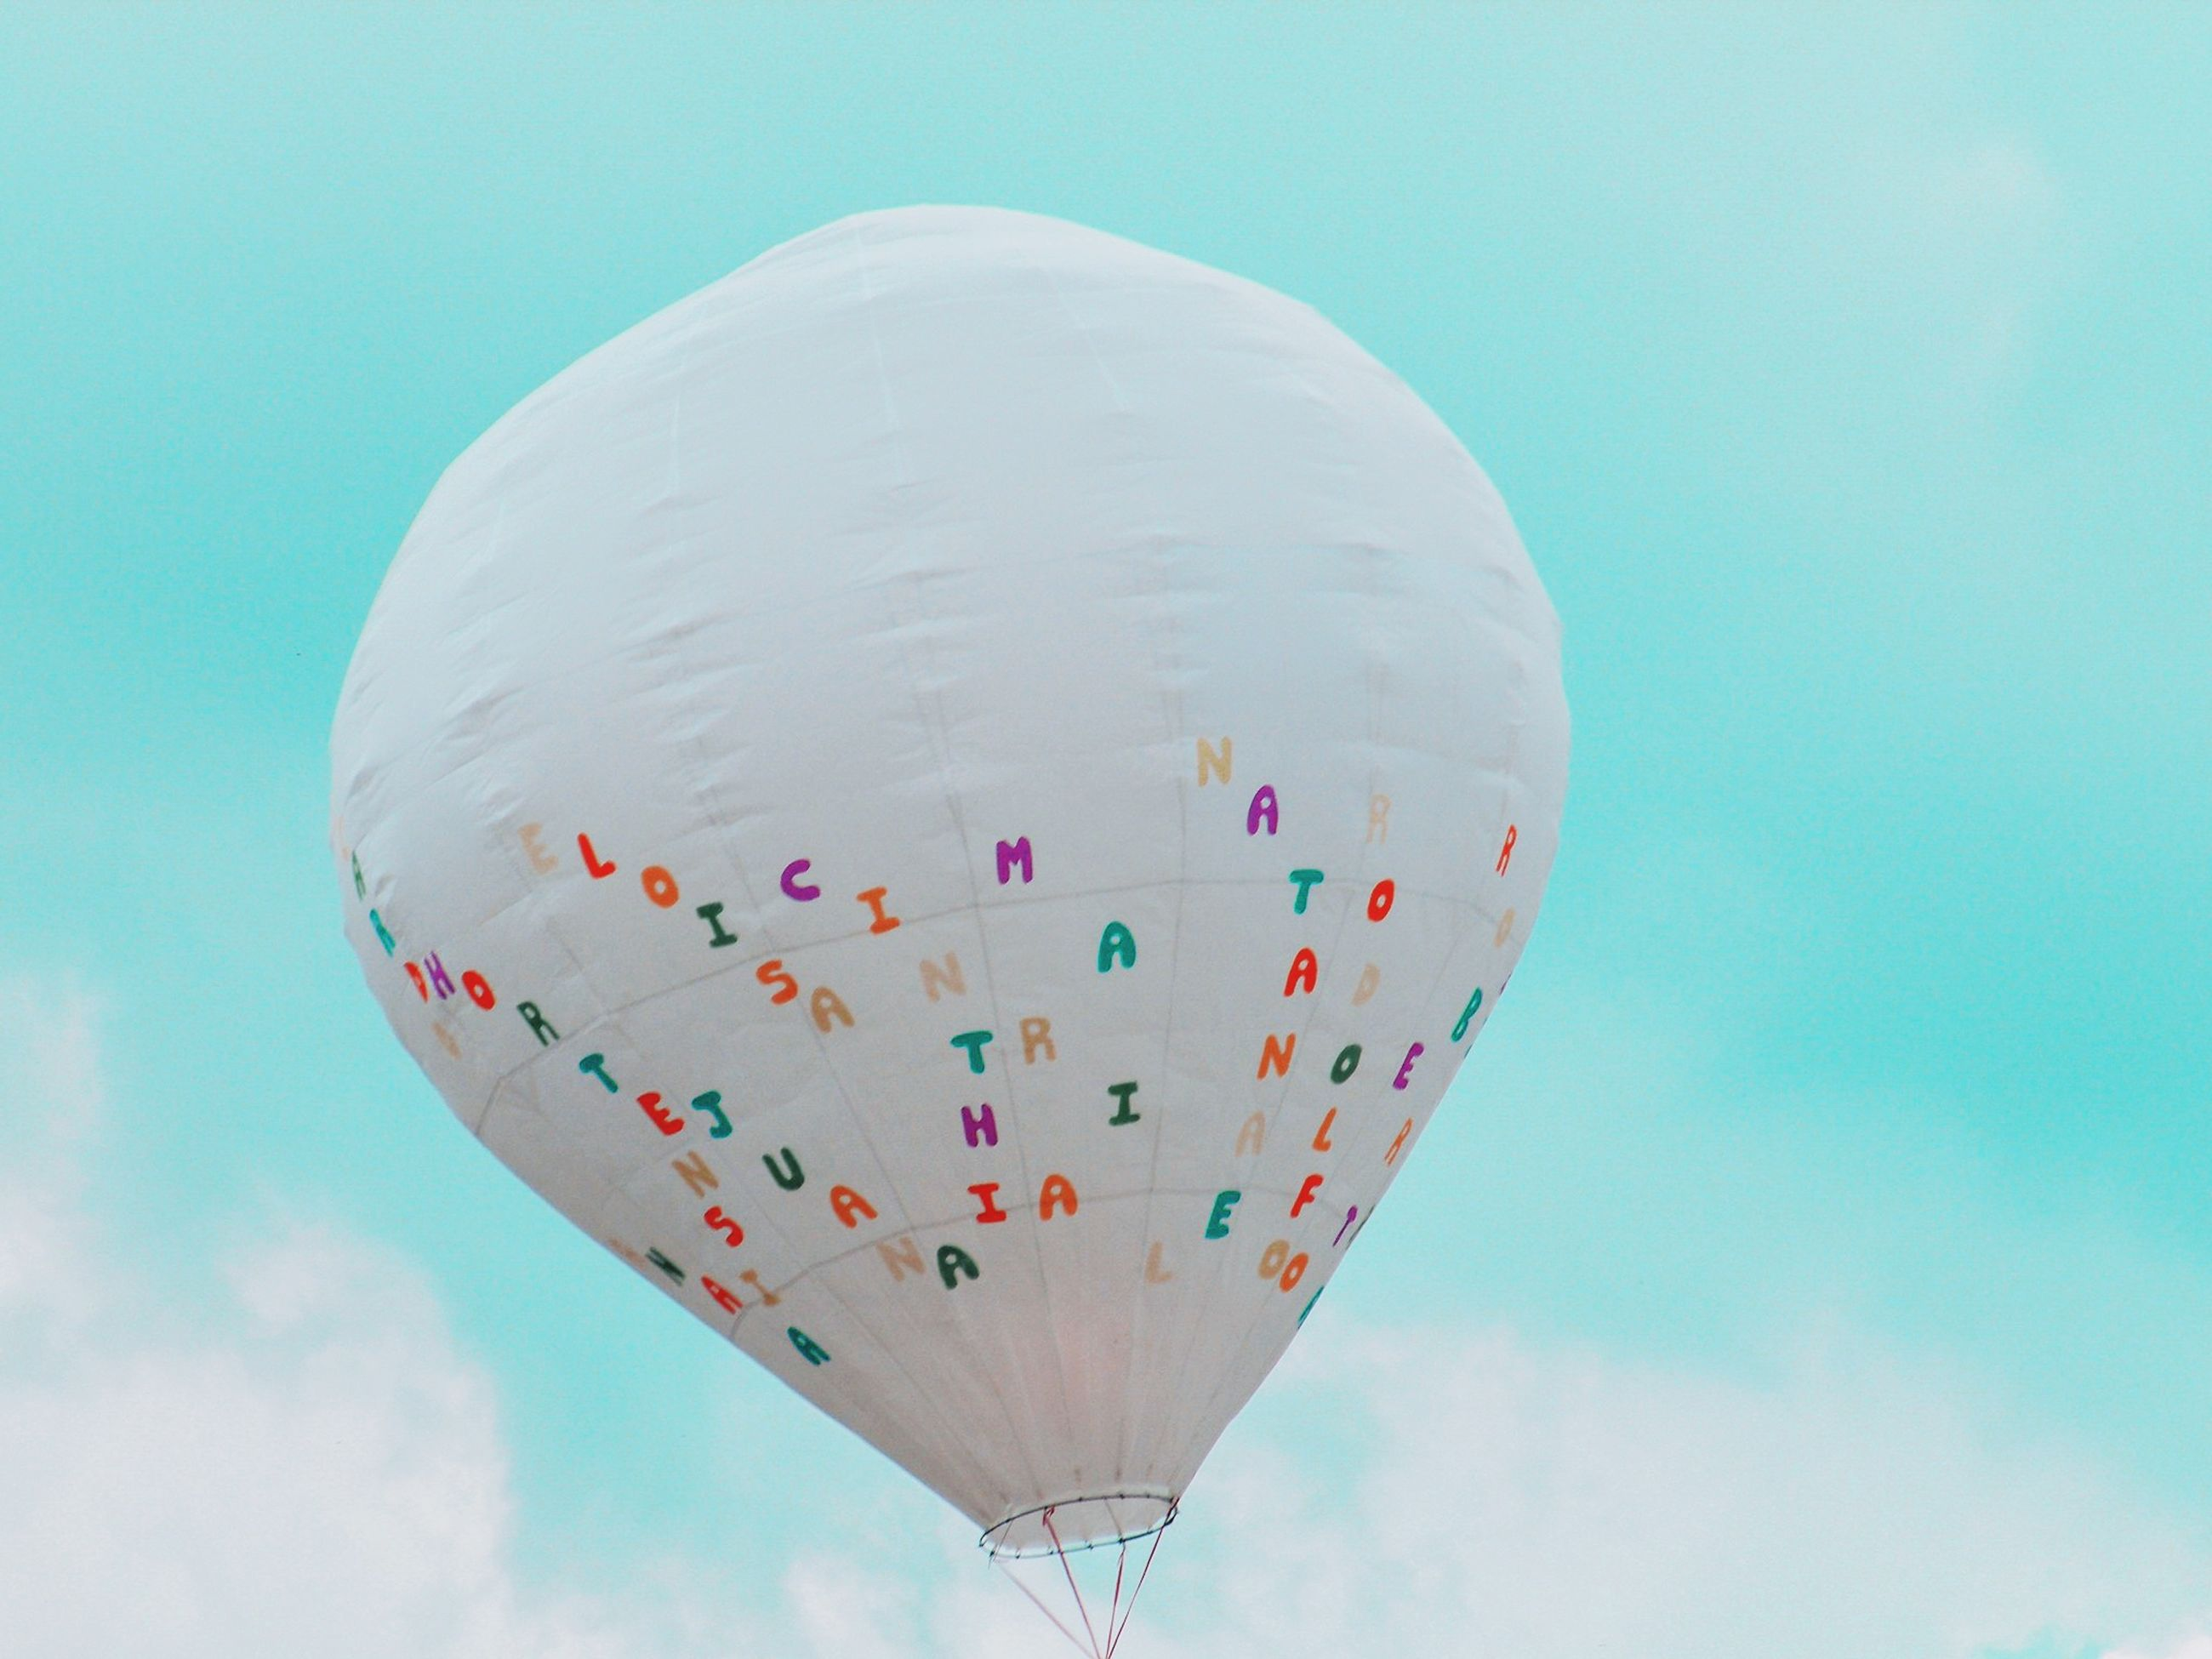 sky, balloon, flying, low angle view, nature, mid-air, day, multi colored, cloud - sky, transportation, hot air balloon, air vehicle, blue, outdoors, no people, adventure, travel, pattern, white color, motion, ballooning festival